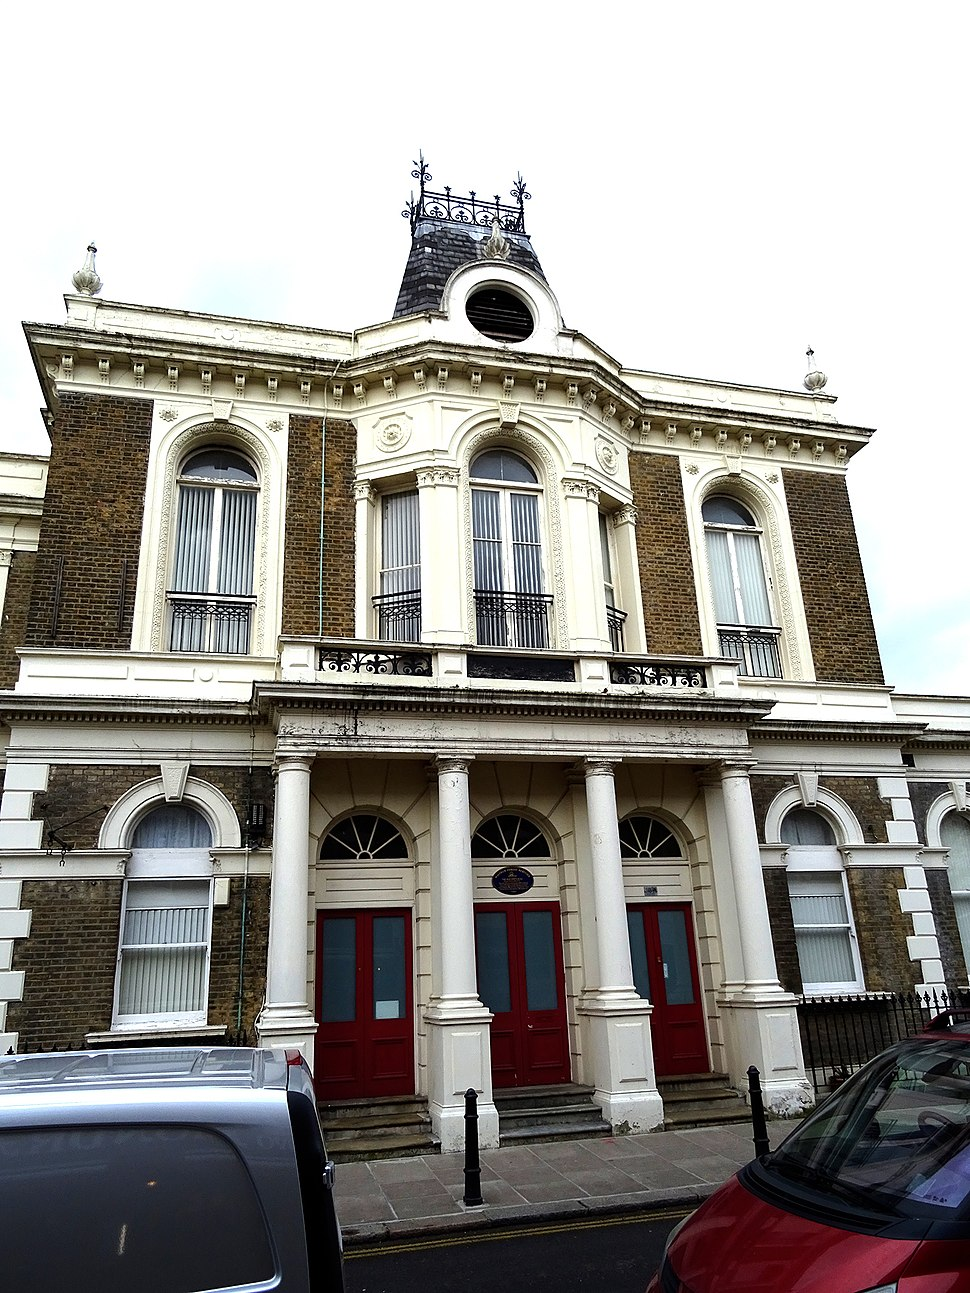 The Old Town Hall 14B Orford Road Walthamstow Village London E17 9LN